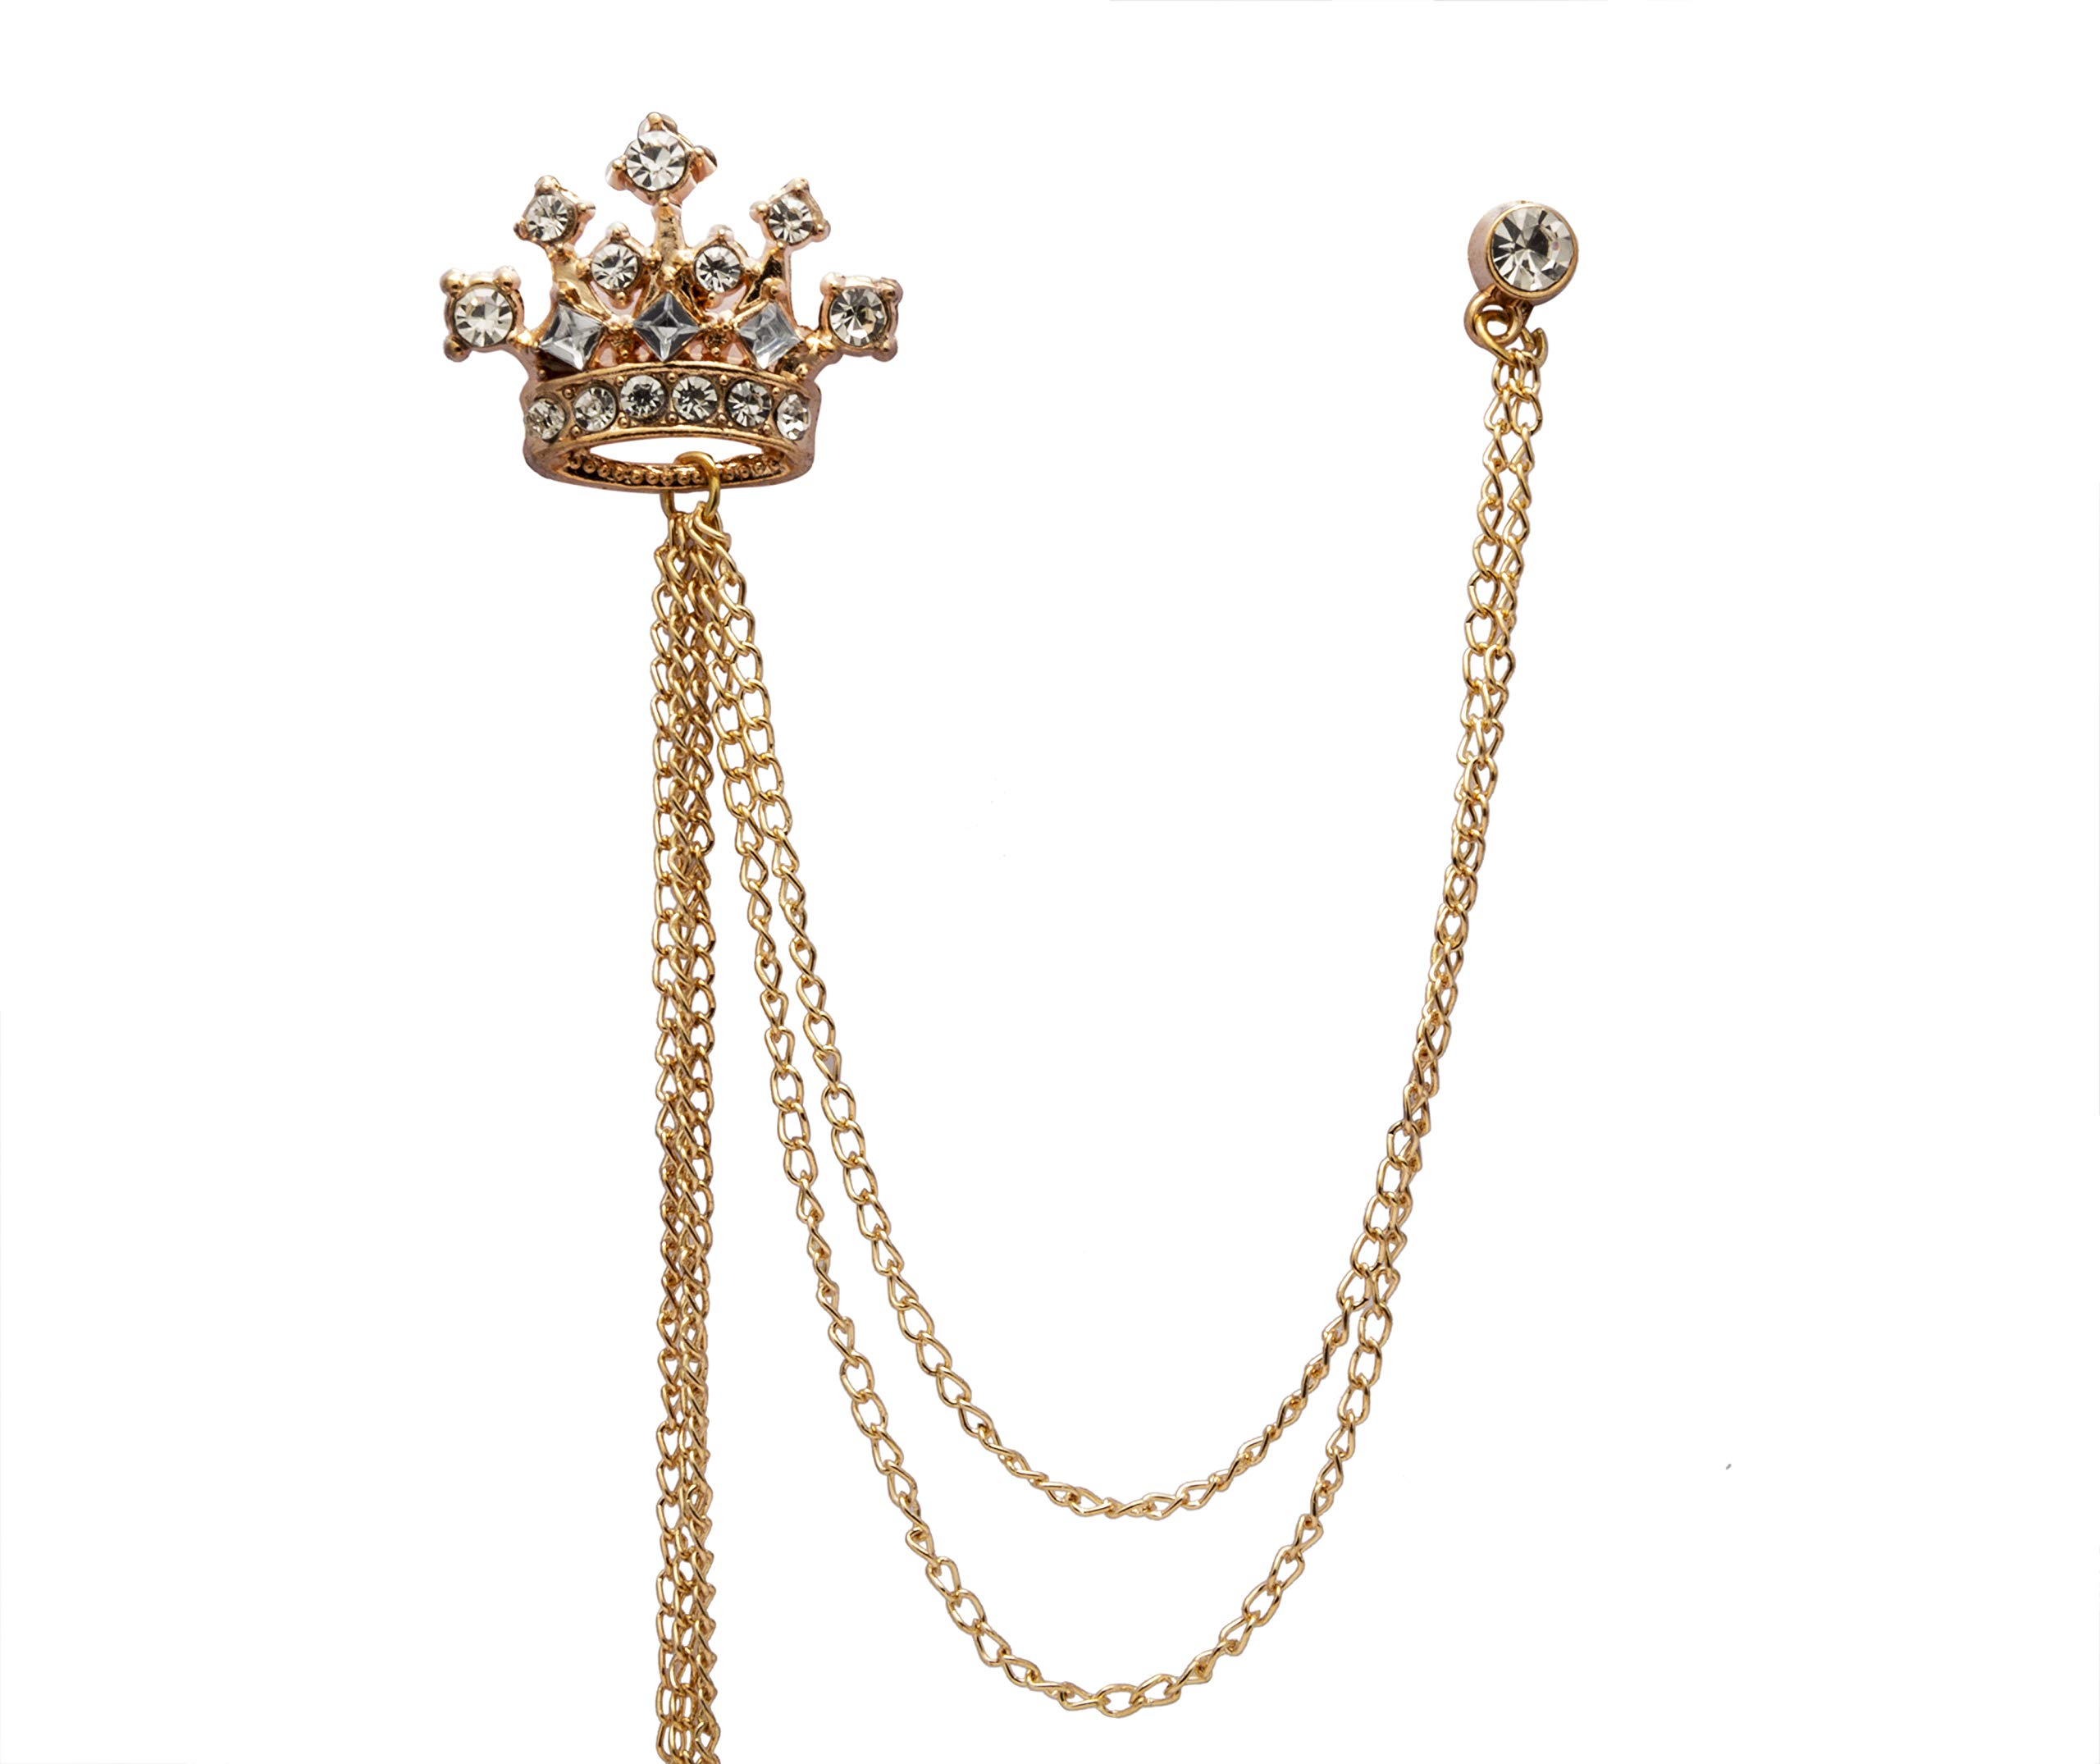 Knighthood Crowned Stone With Hanging Chain Brooch/Collar Pin/Lapel Pins for Men by Knighthood